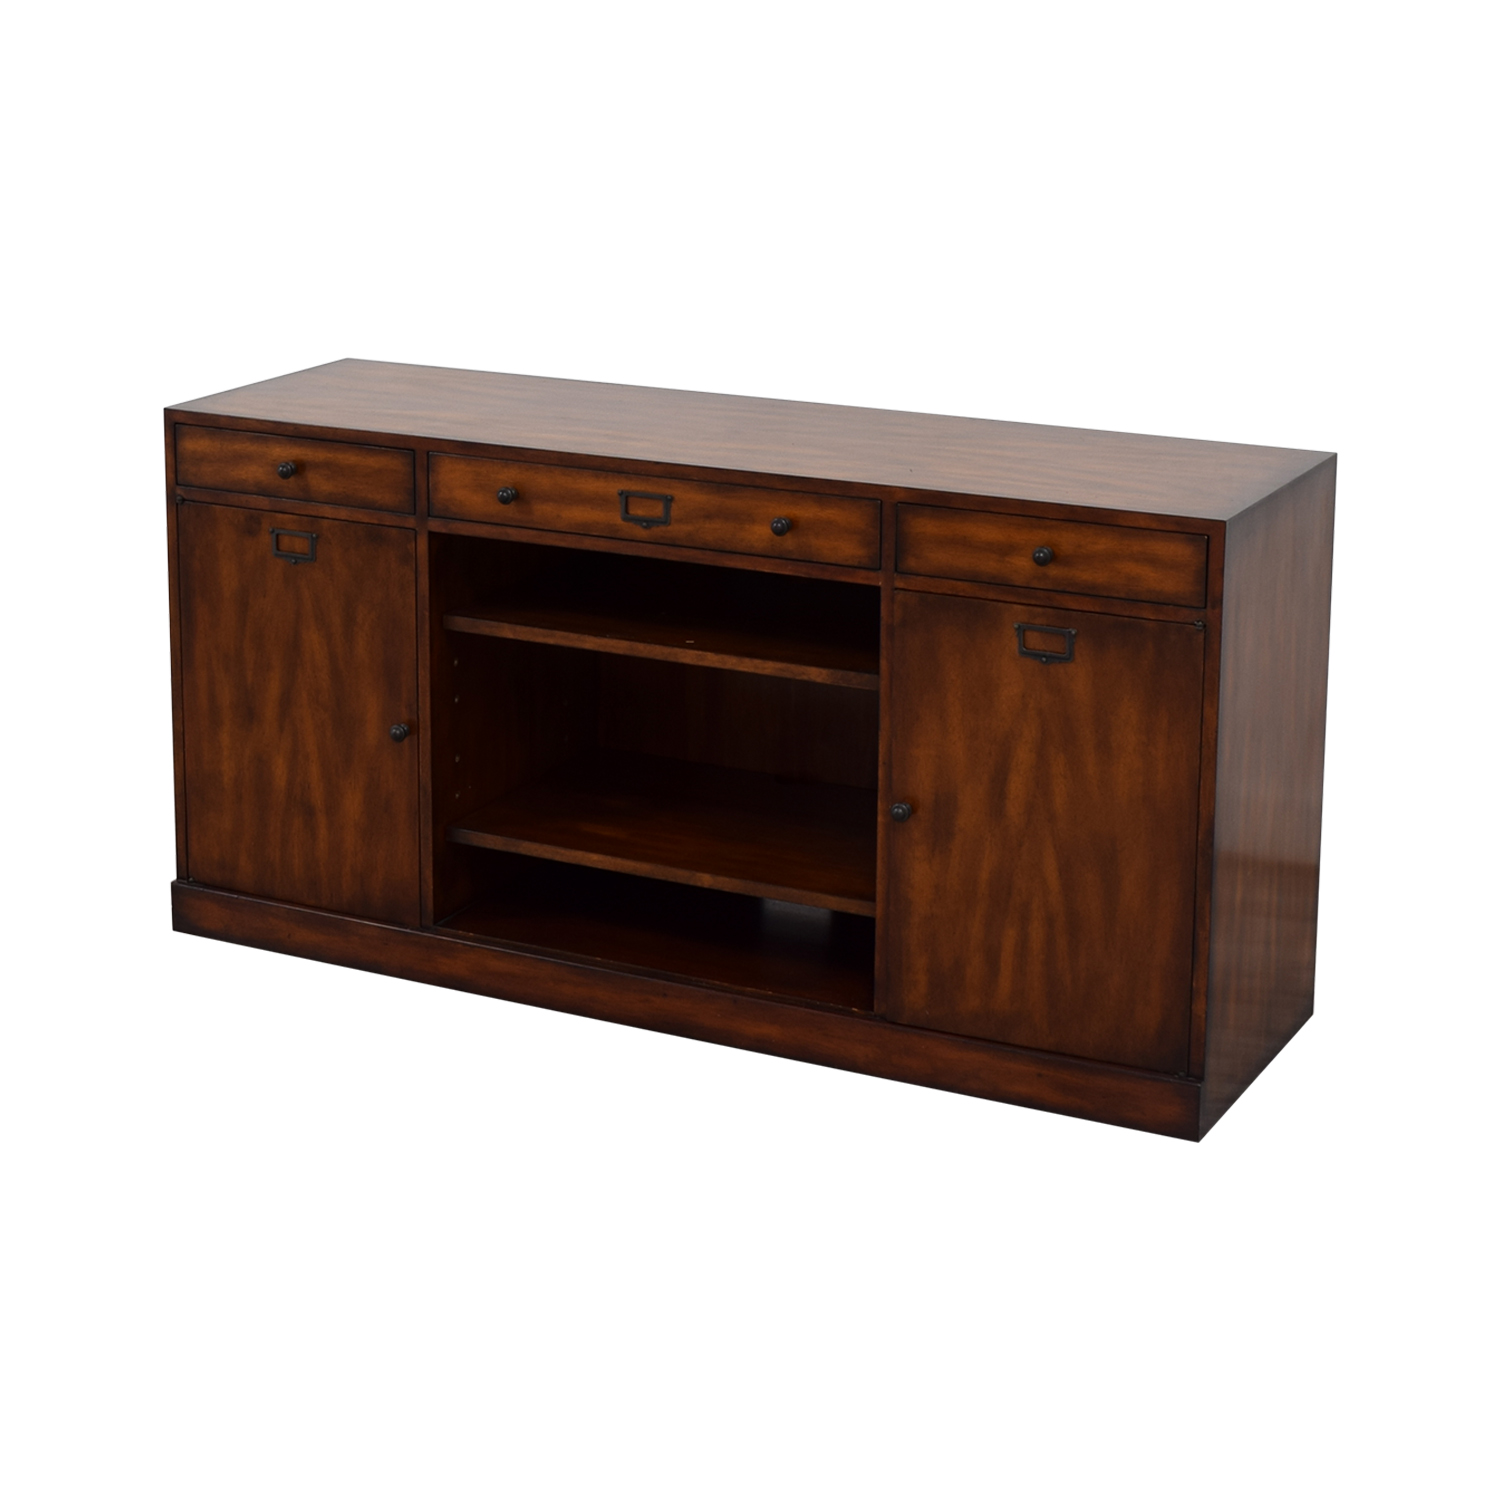 ABC Carpet & Home ABC Carpet & Home Media Console Storage Cabinet price